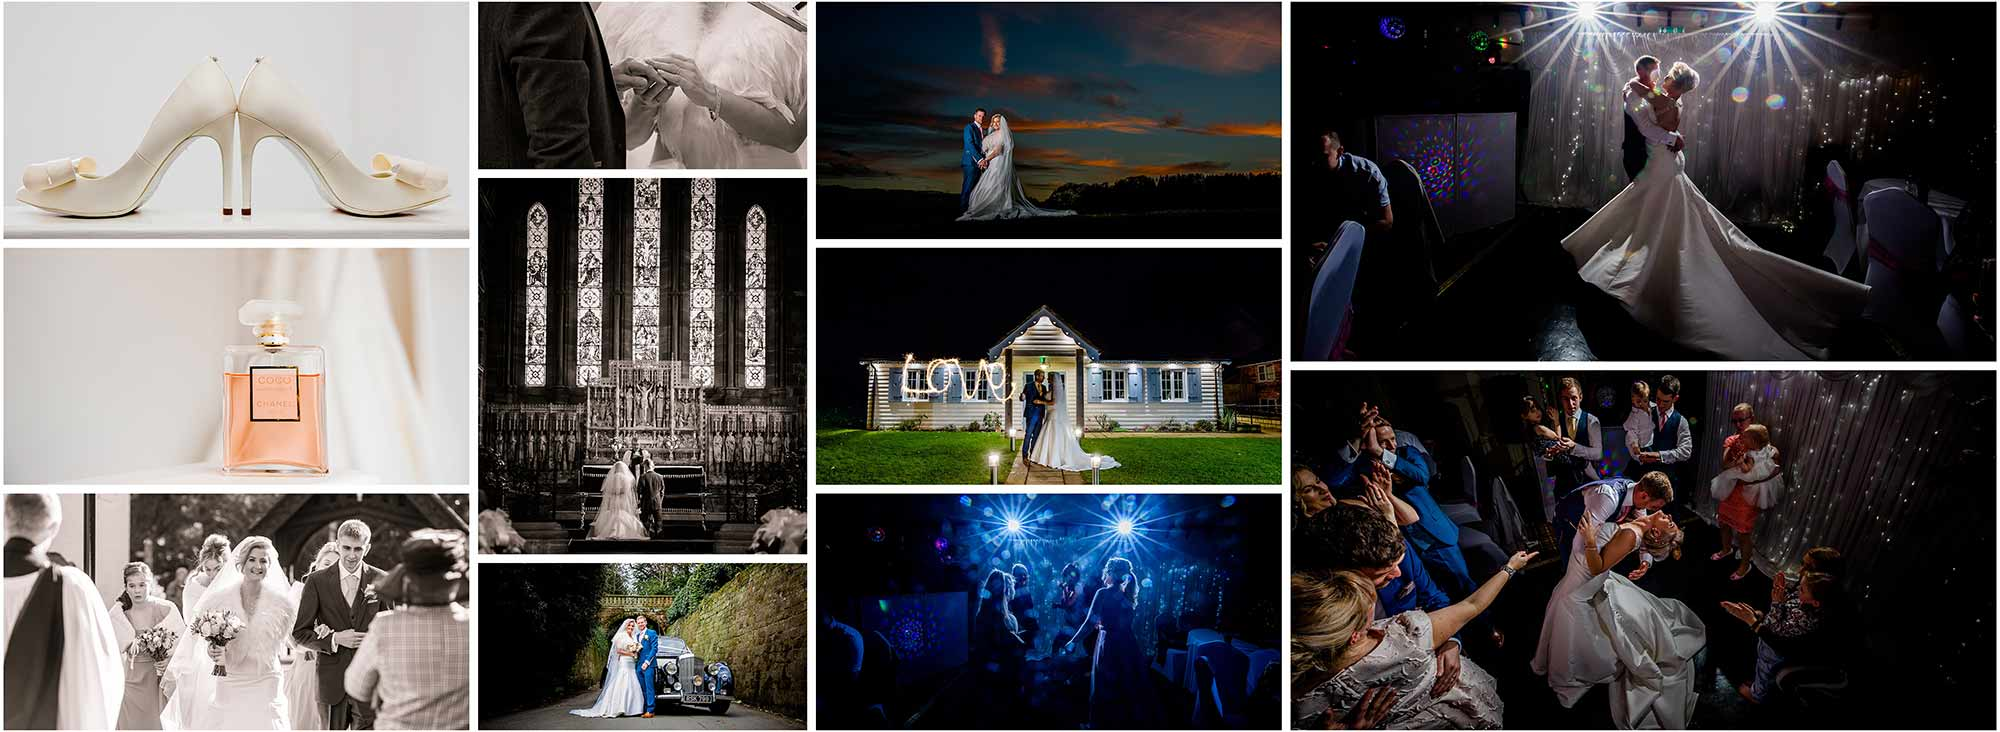 Wedding photography in Cheshire, Staffordshire and Shropshire